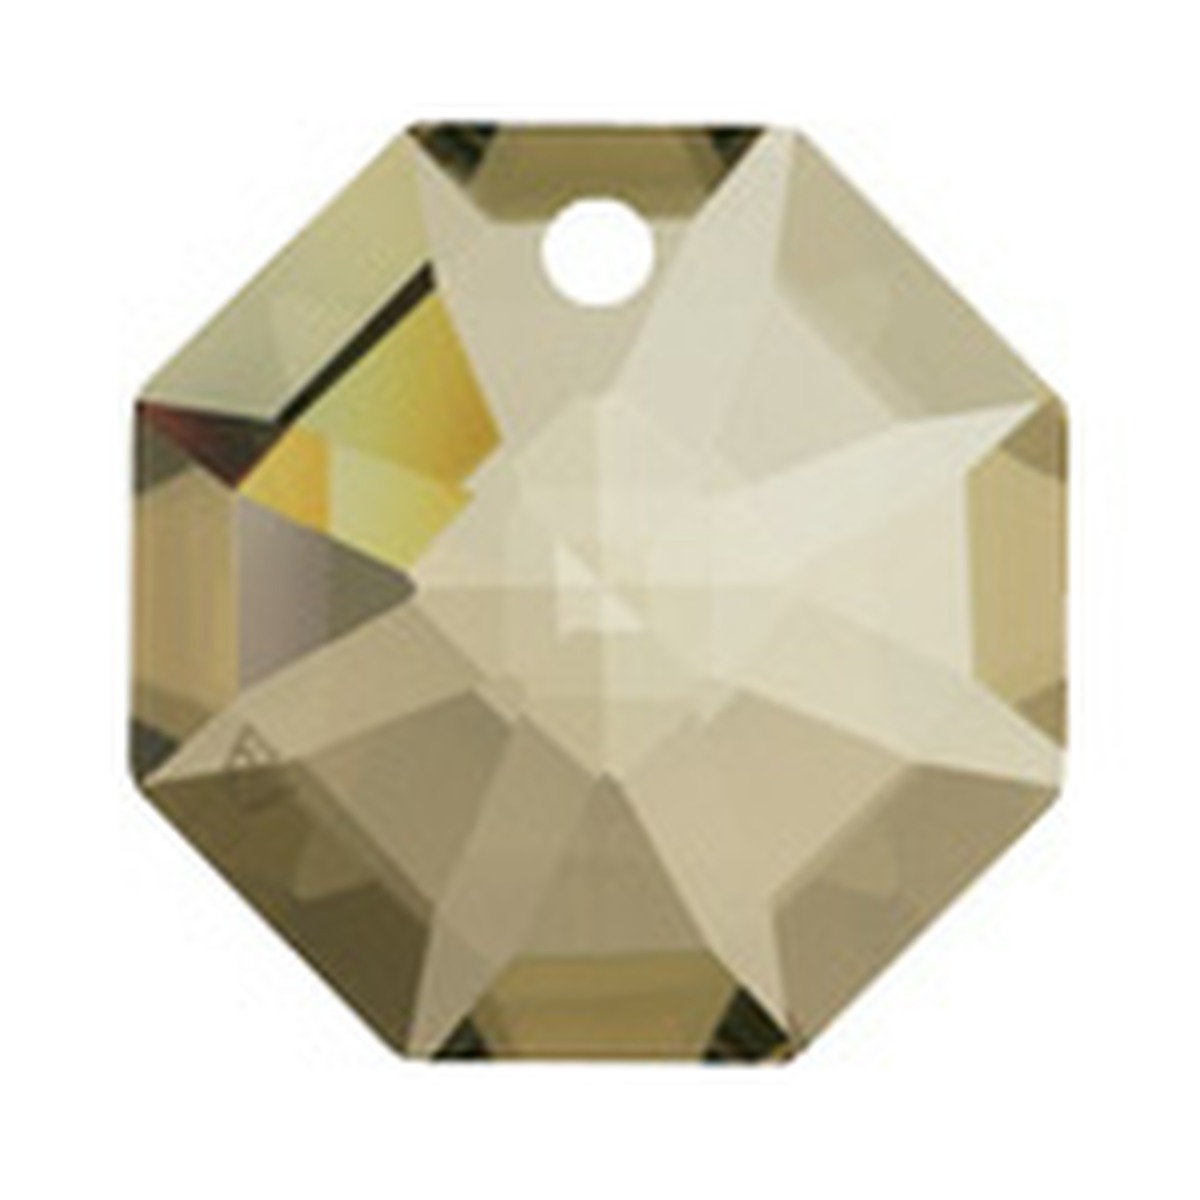 SE009-Golden-Teak-Swarovski-Elements